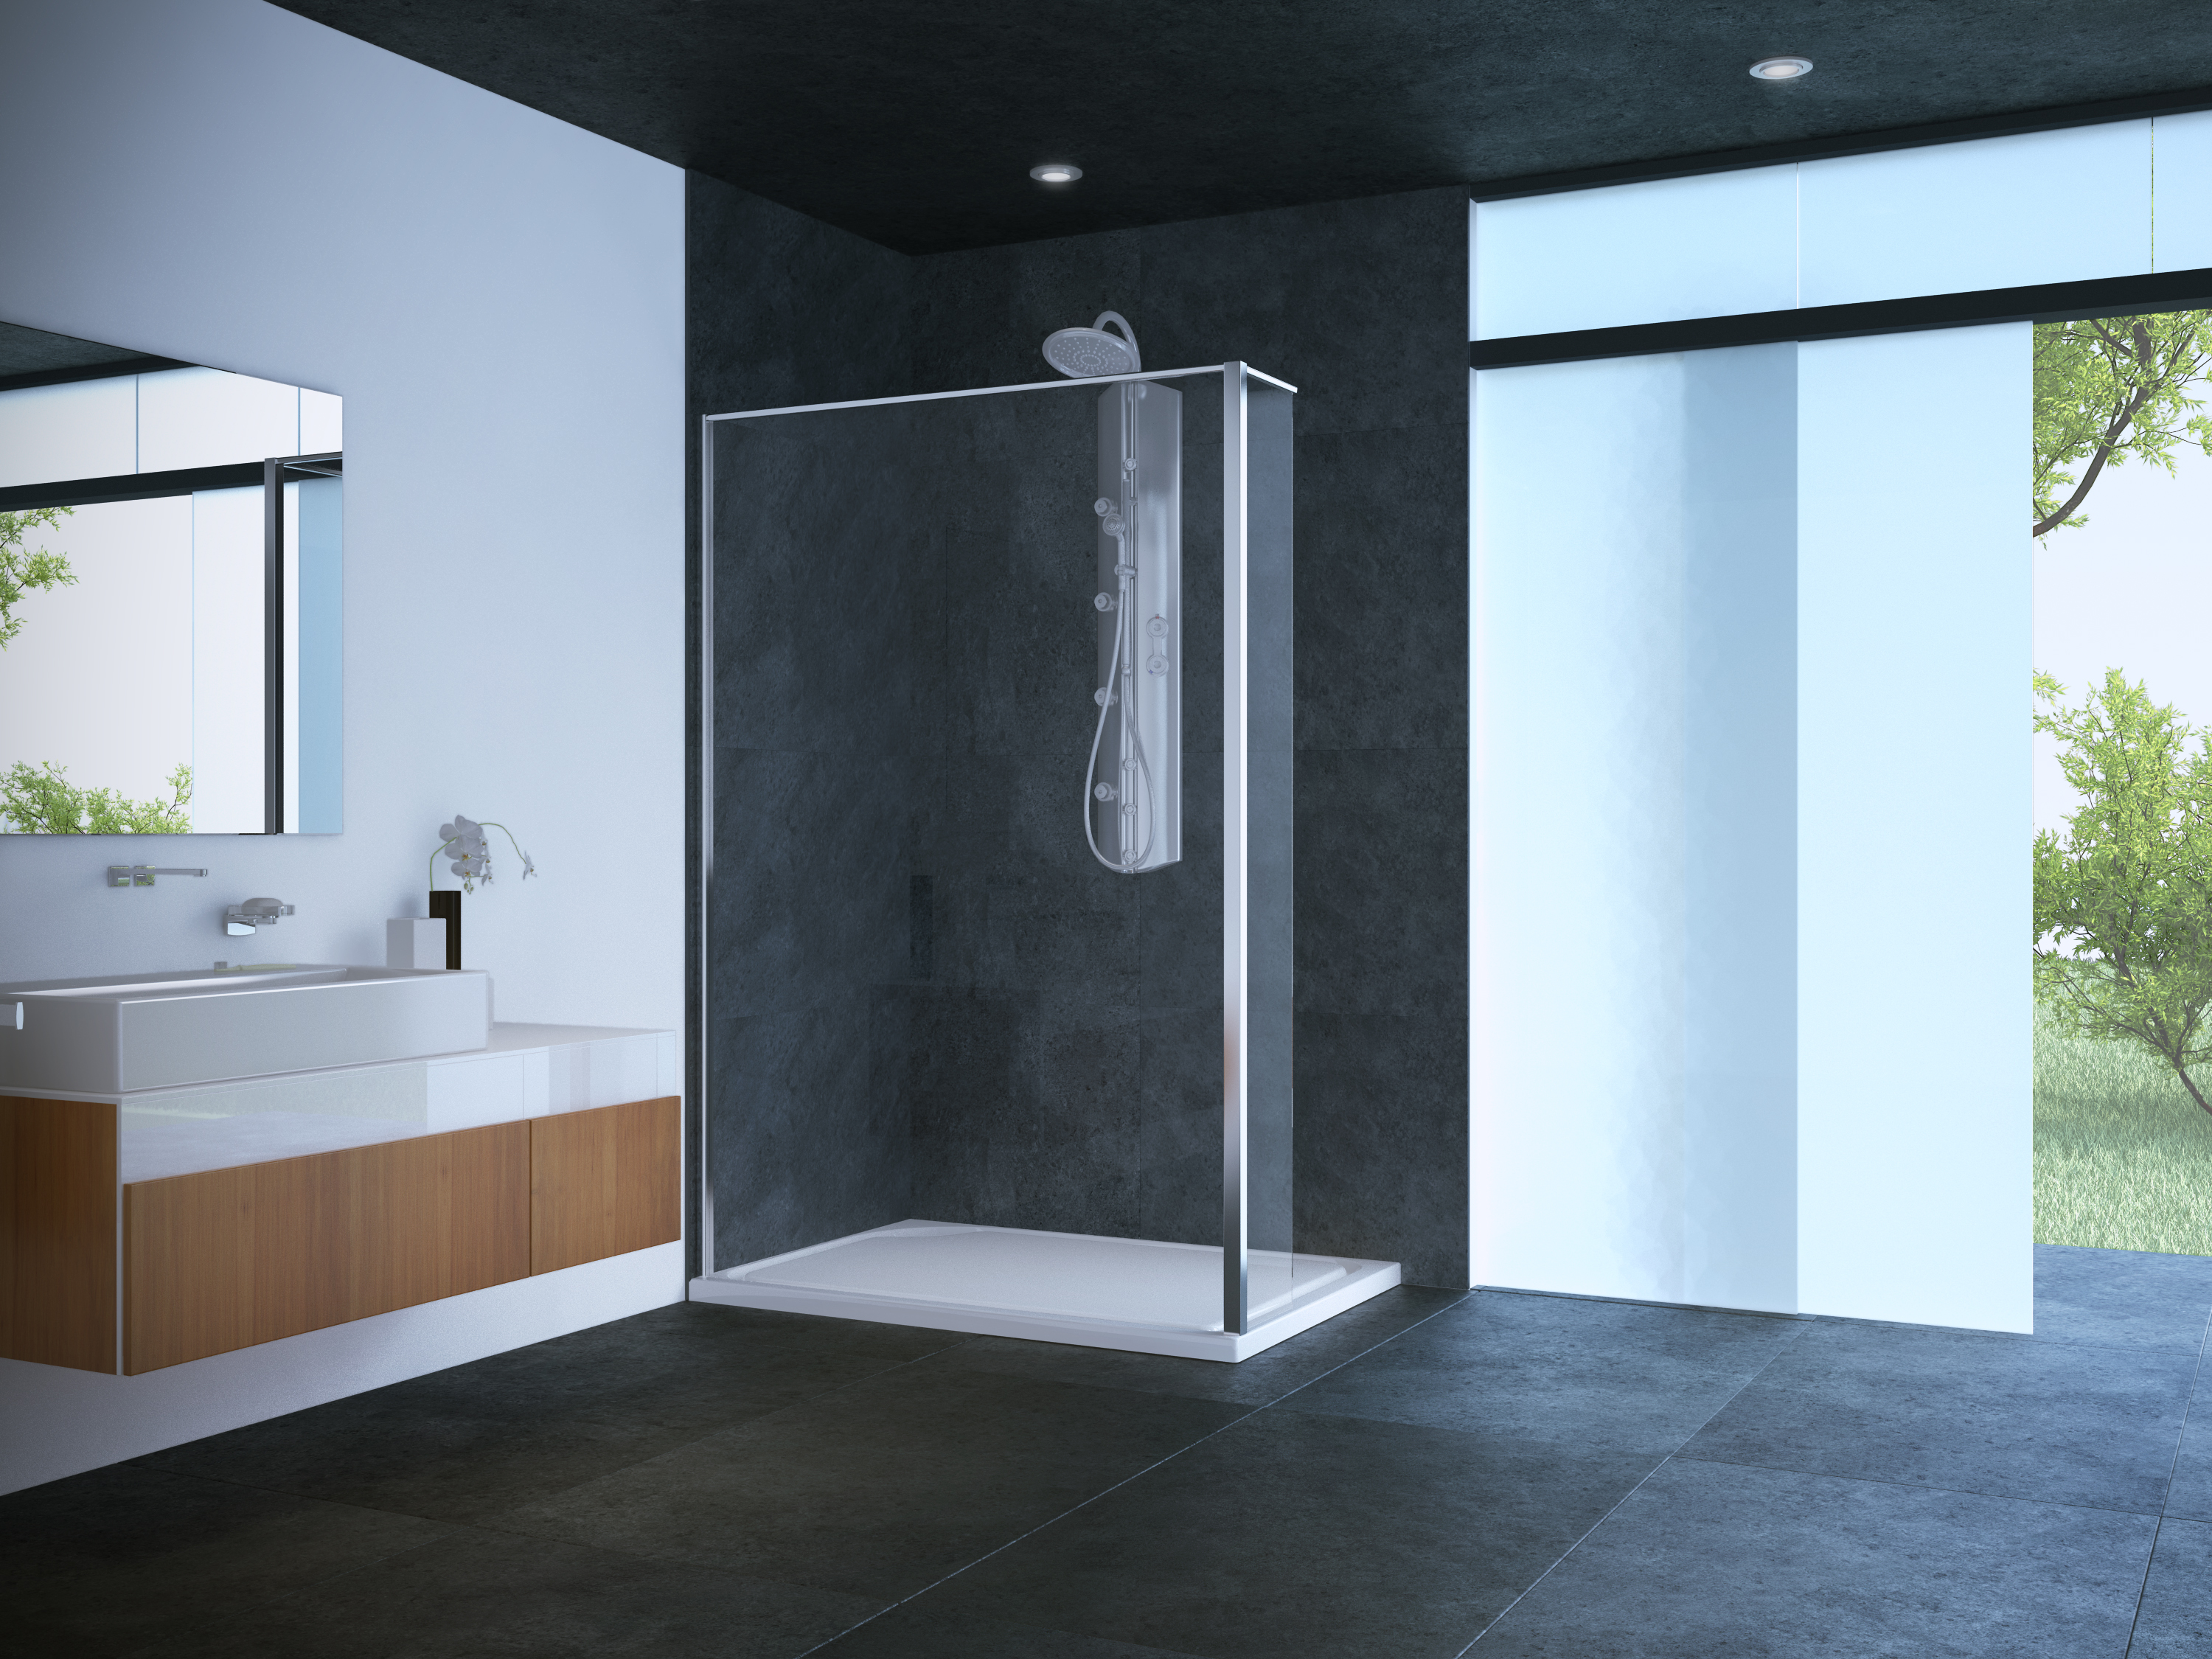 Redesign your bathrooms with QS Supplies - The Art Of Design Magazine